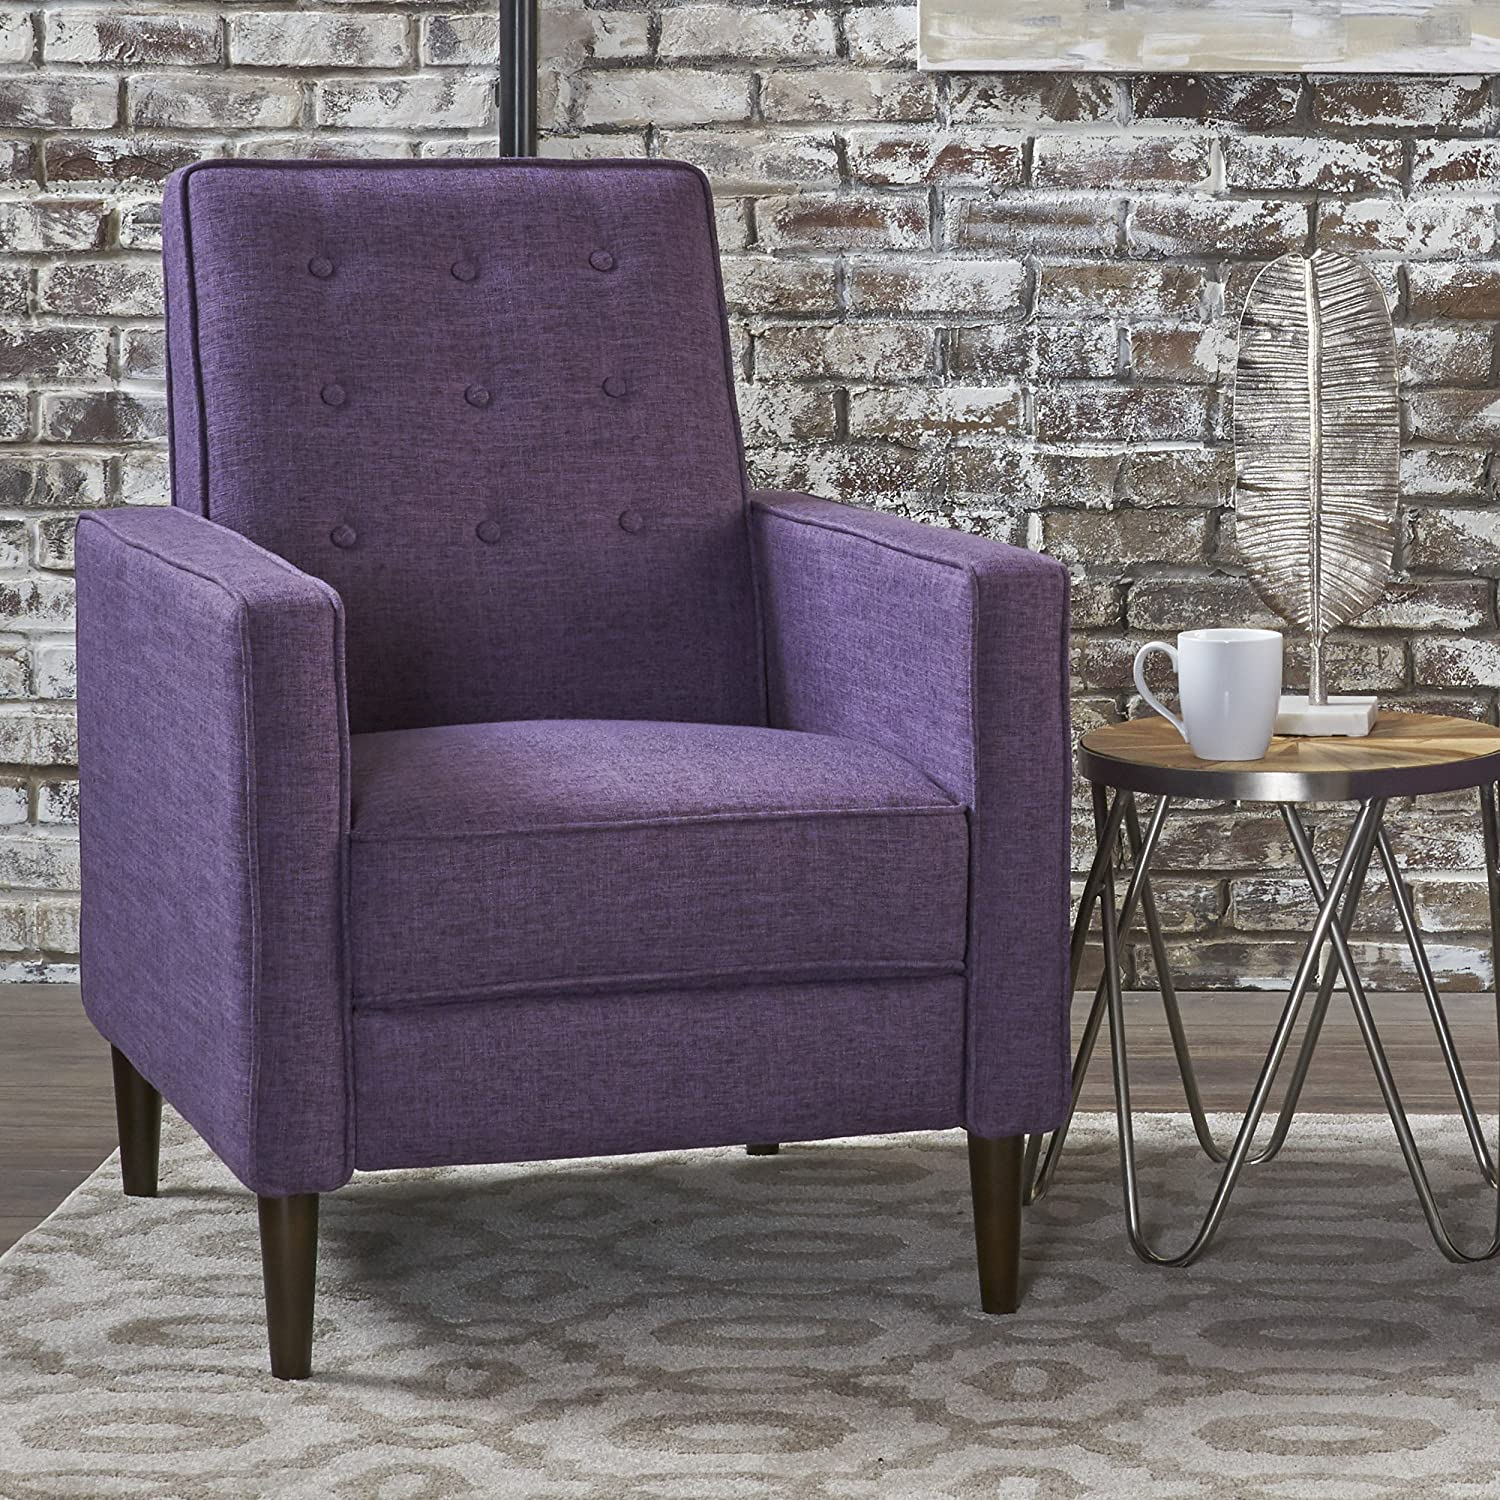 Christopher Knight Home 301372 Mason Recliner, Single, Muted Purple